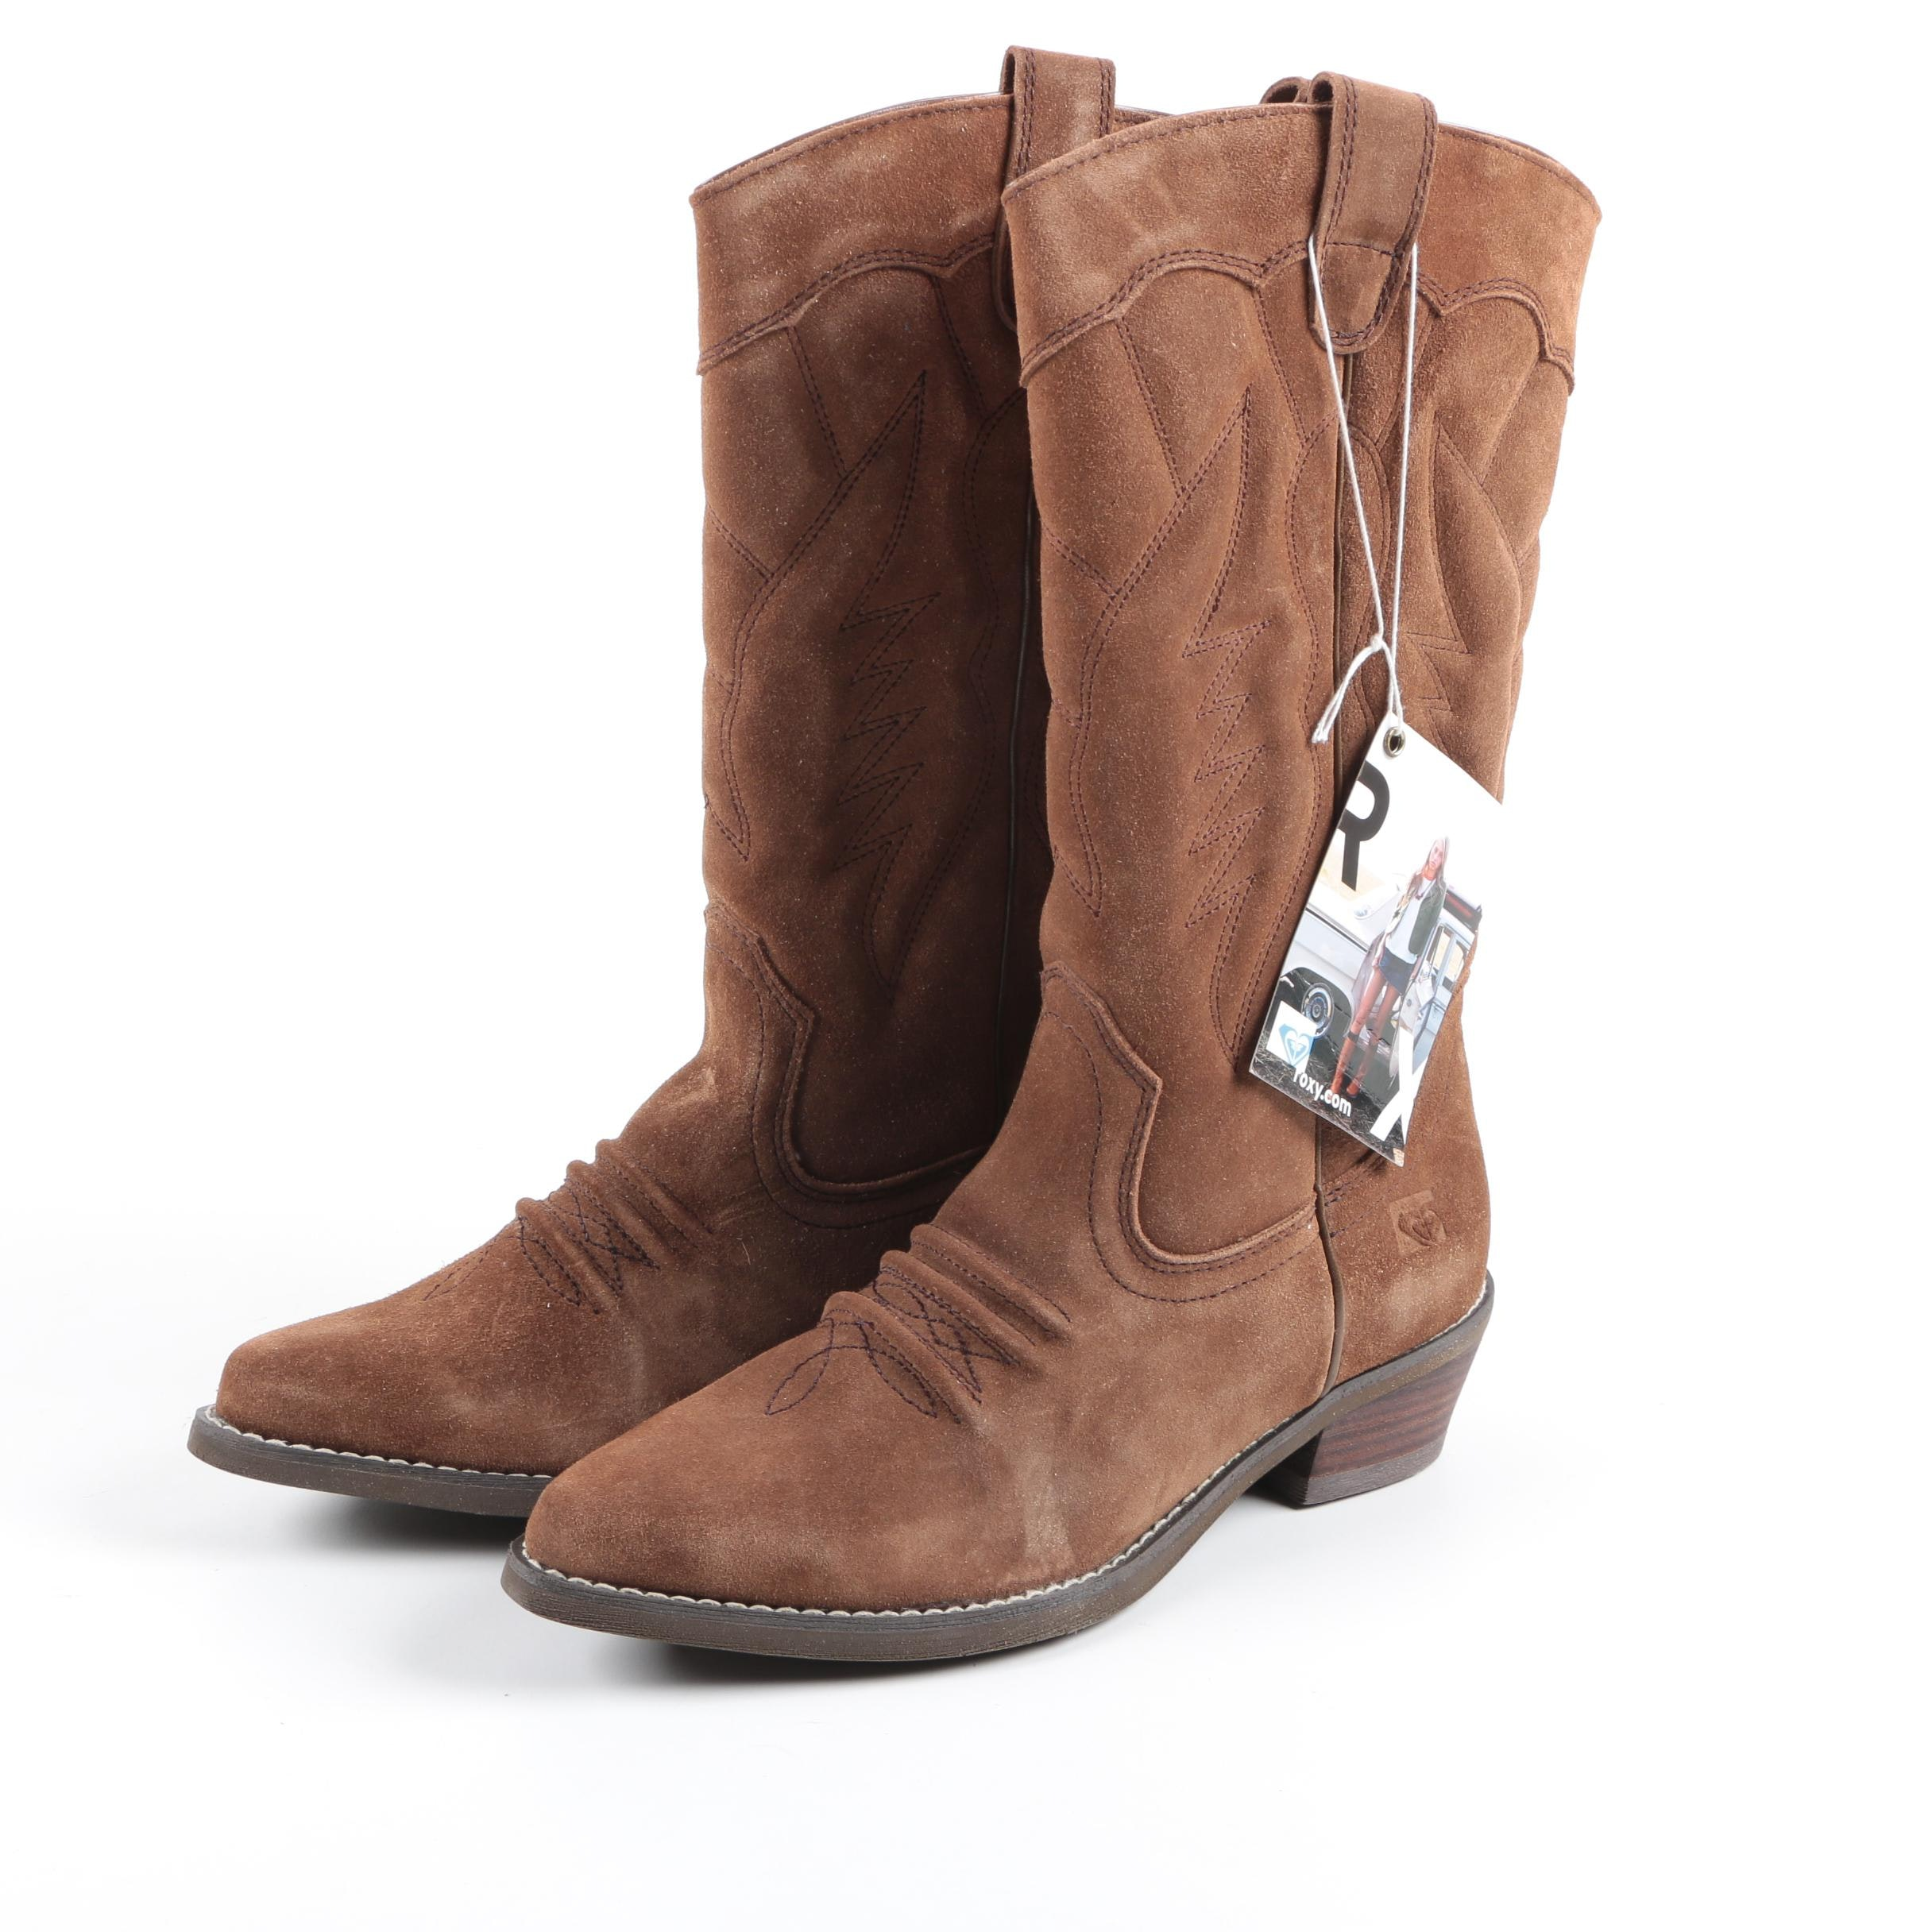 Women's Roxy Brown Suede Cowboy Boots